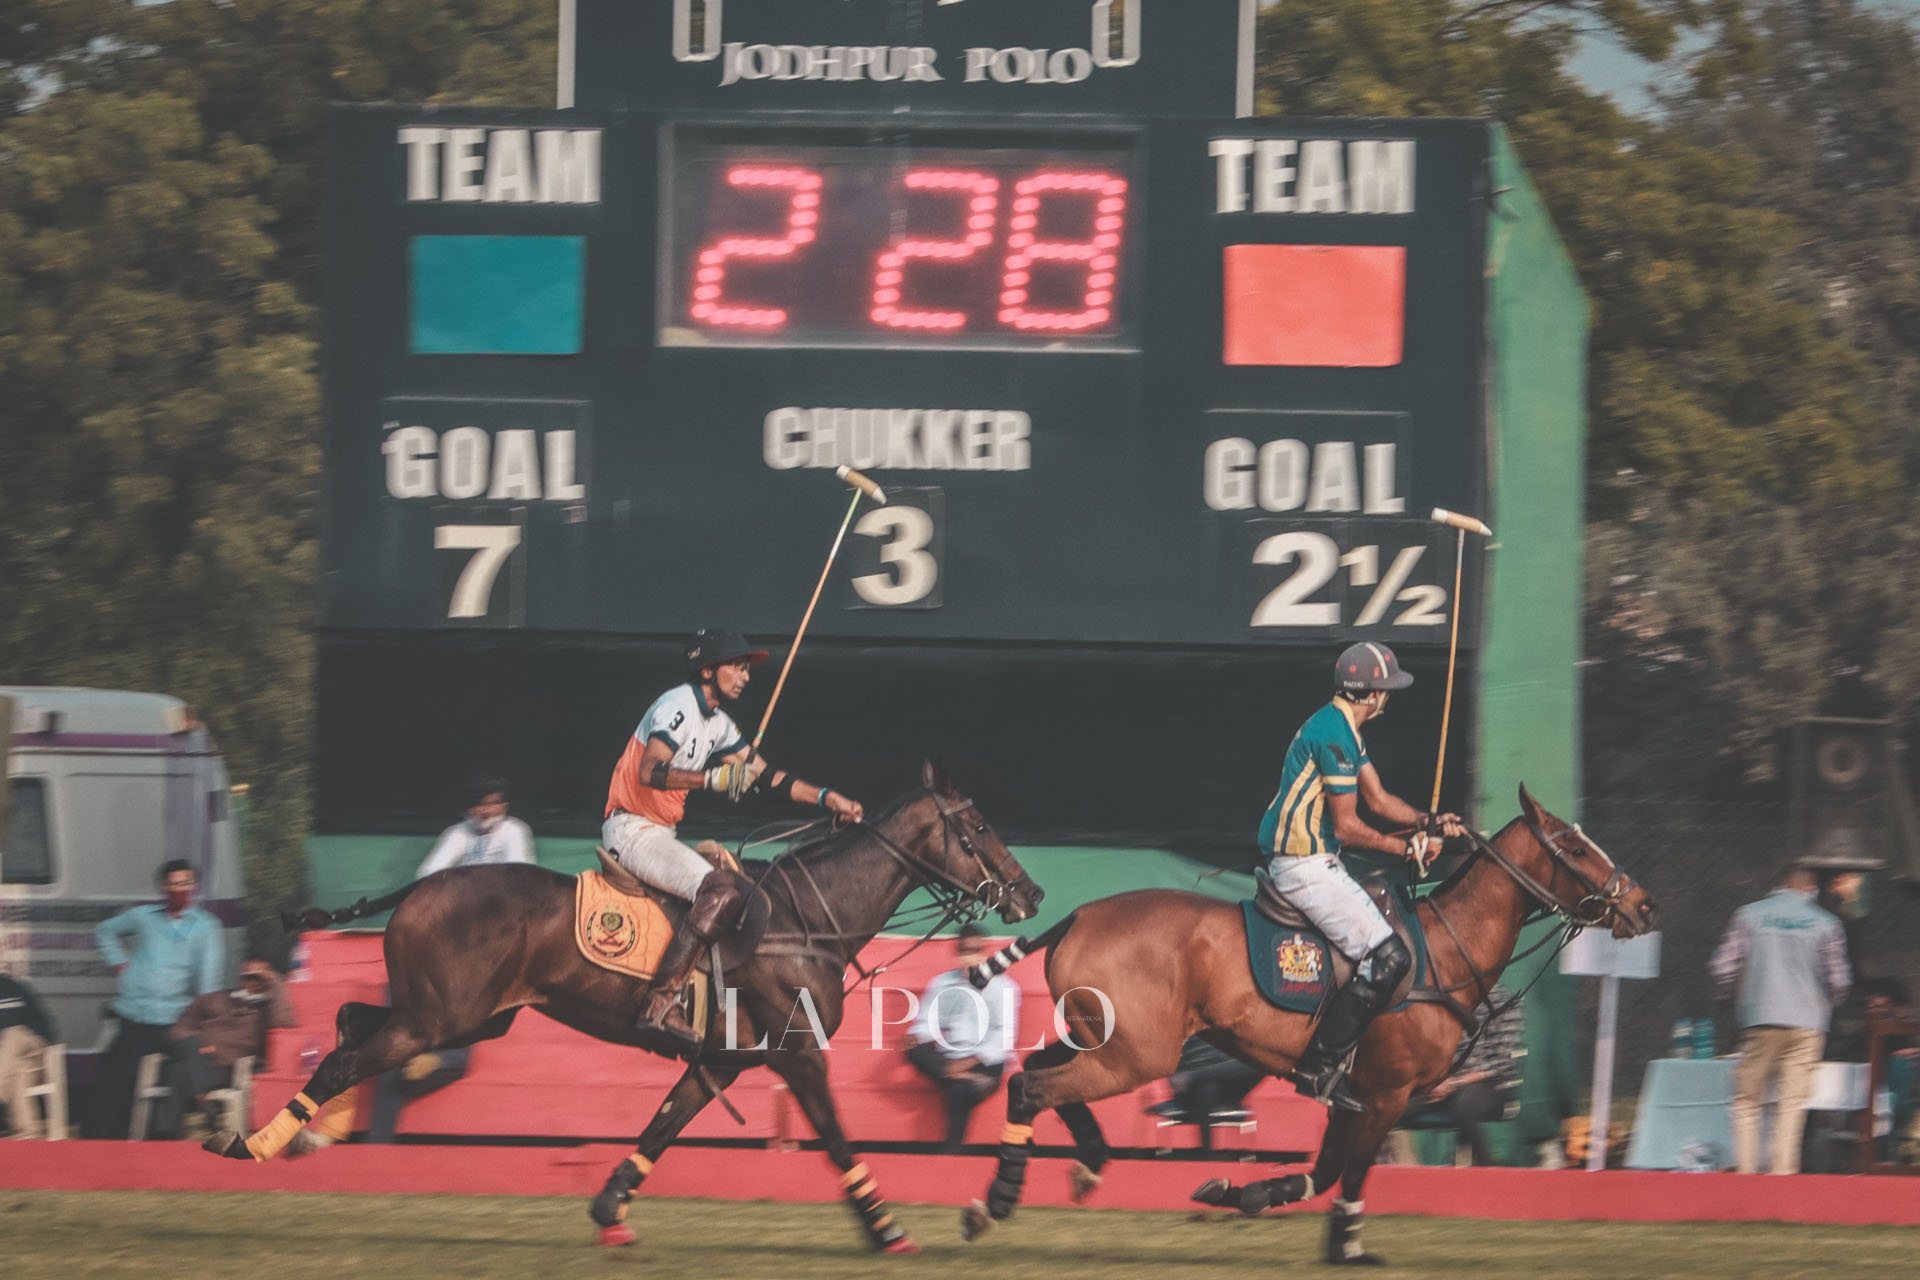 RAJNIGANDHA ACHIEVERS DOMINATES JODHPUR - POLO FACTORY ON DAY 2 OF THE H.H. MAHARAJA OF JODHPUR CUP!